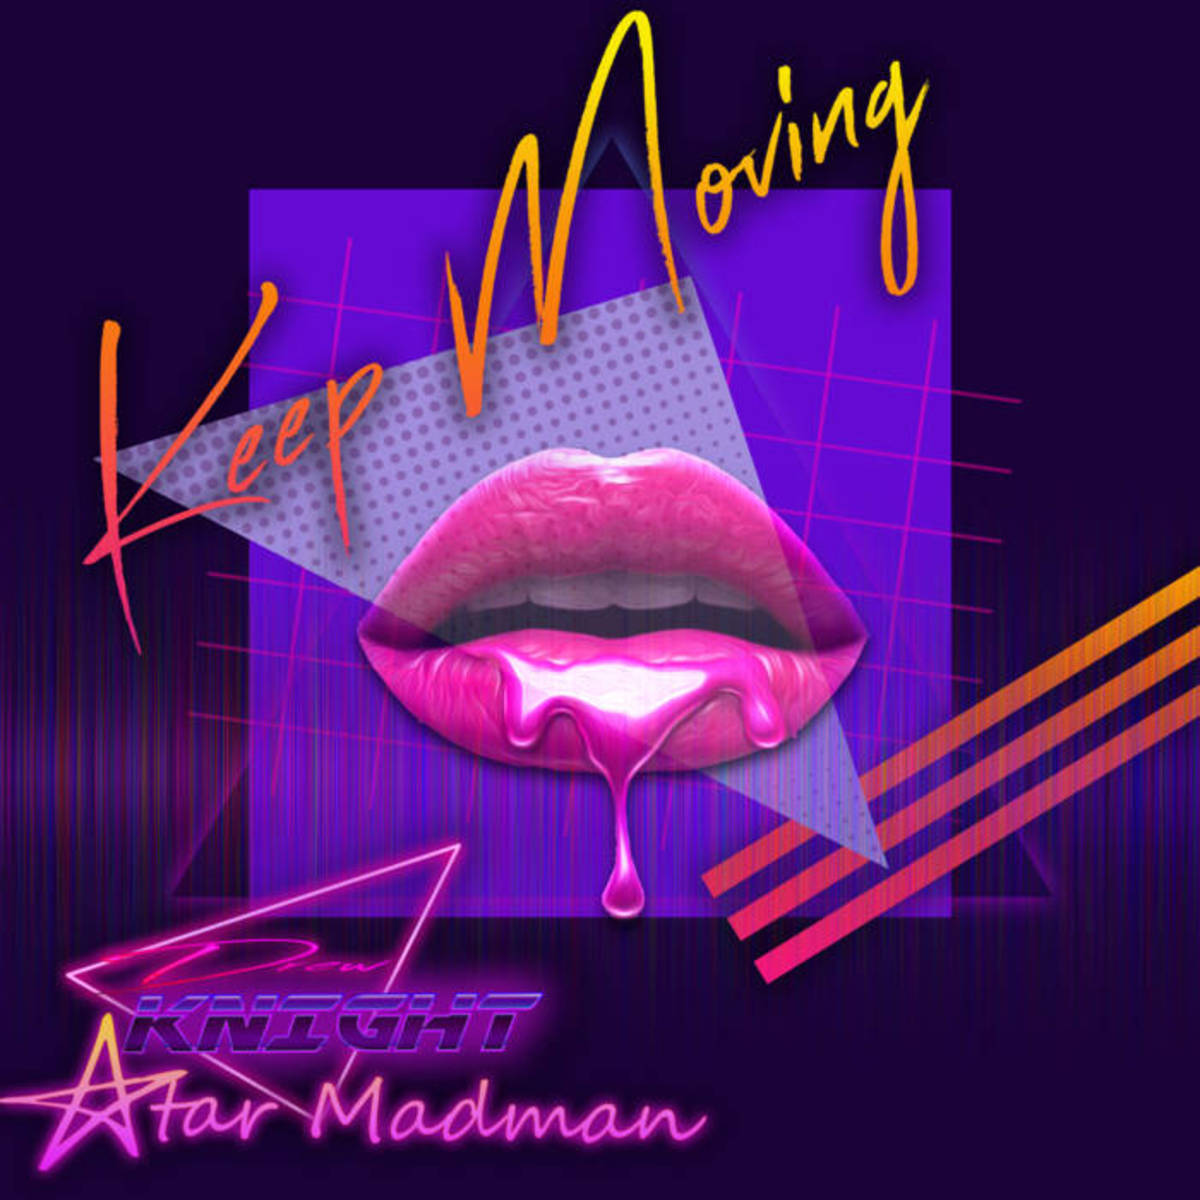 synth-single-review-keep-moving-by-star-madman-and-drew-knight